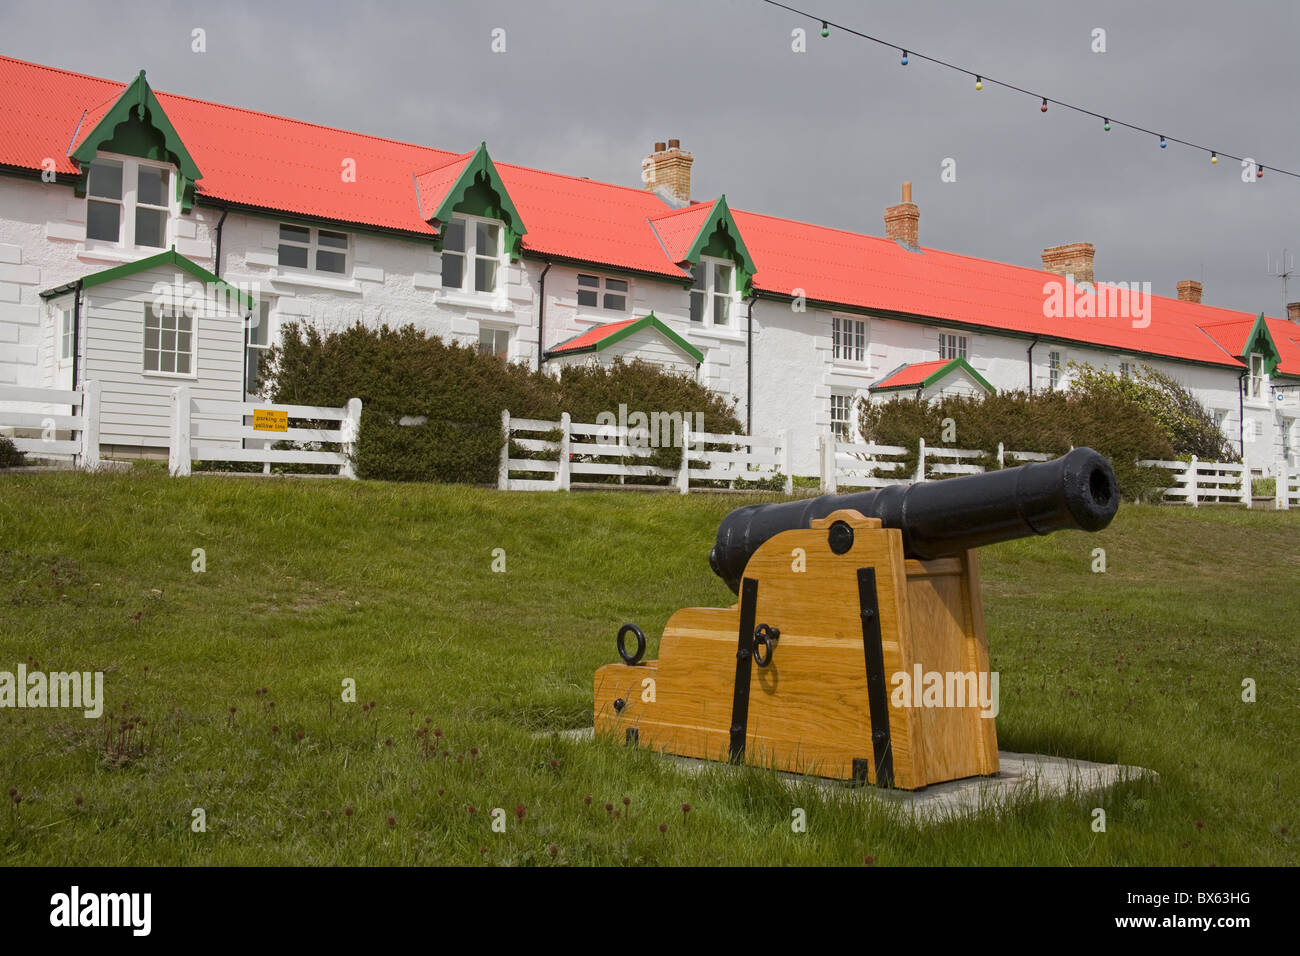 Cannon on Victory Green in Port Stanley, Falkland Islands (Islas Malvinas), South America - Stock Image